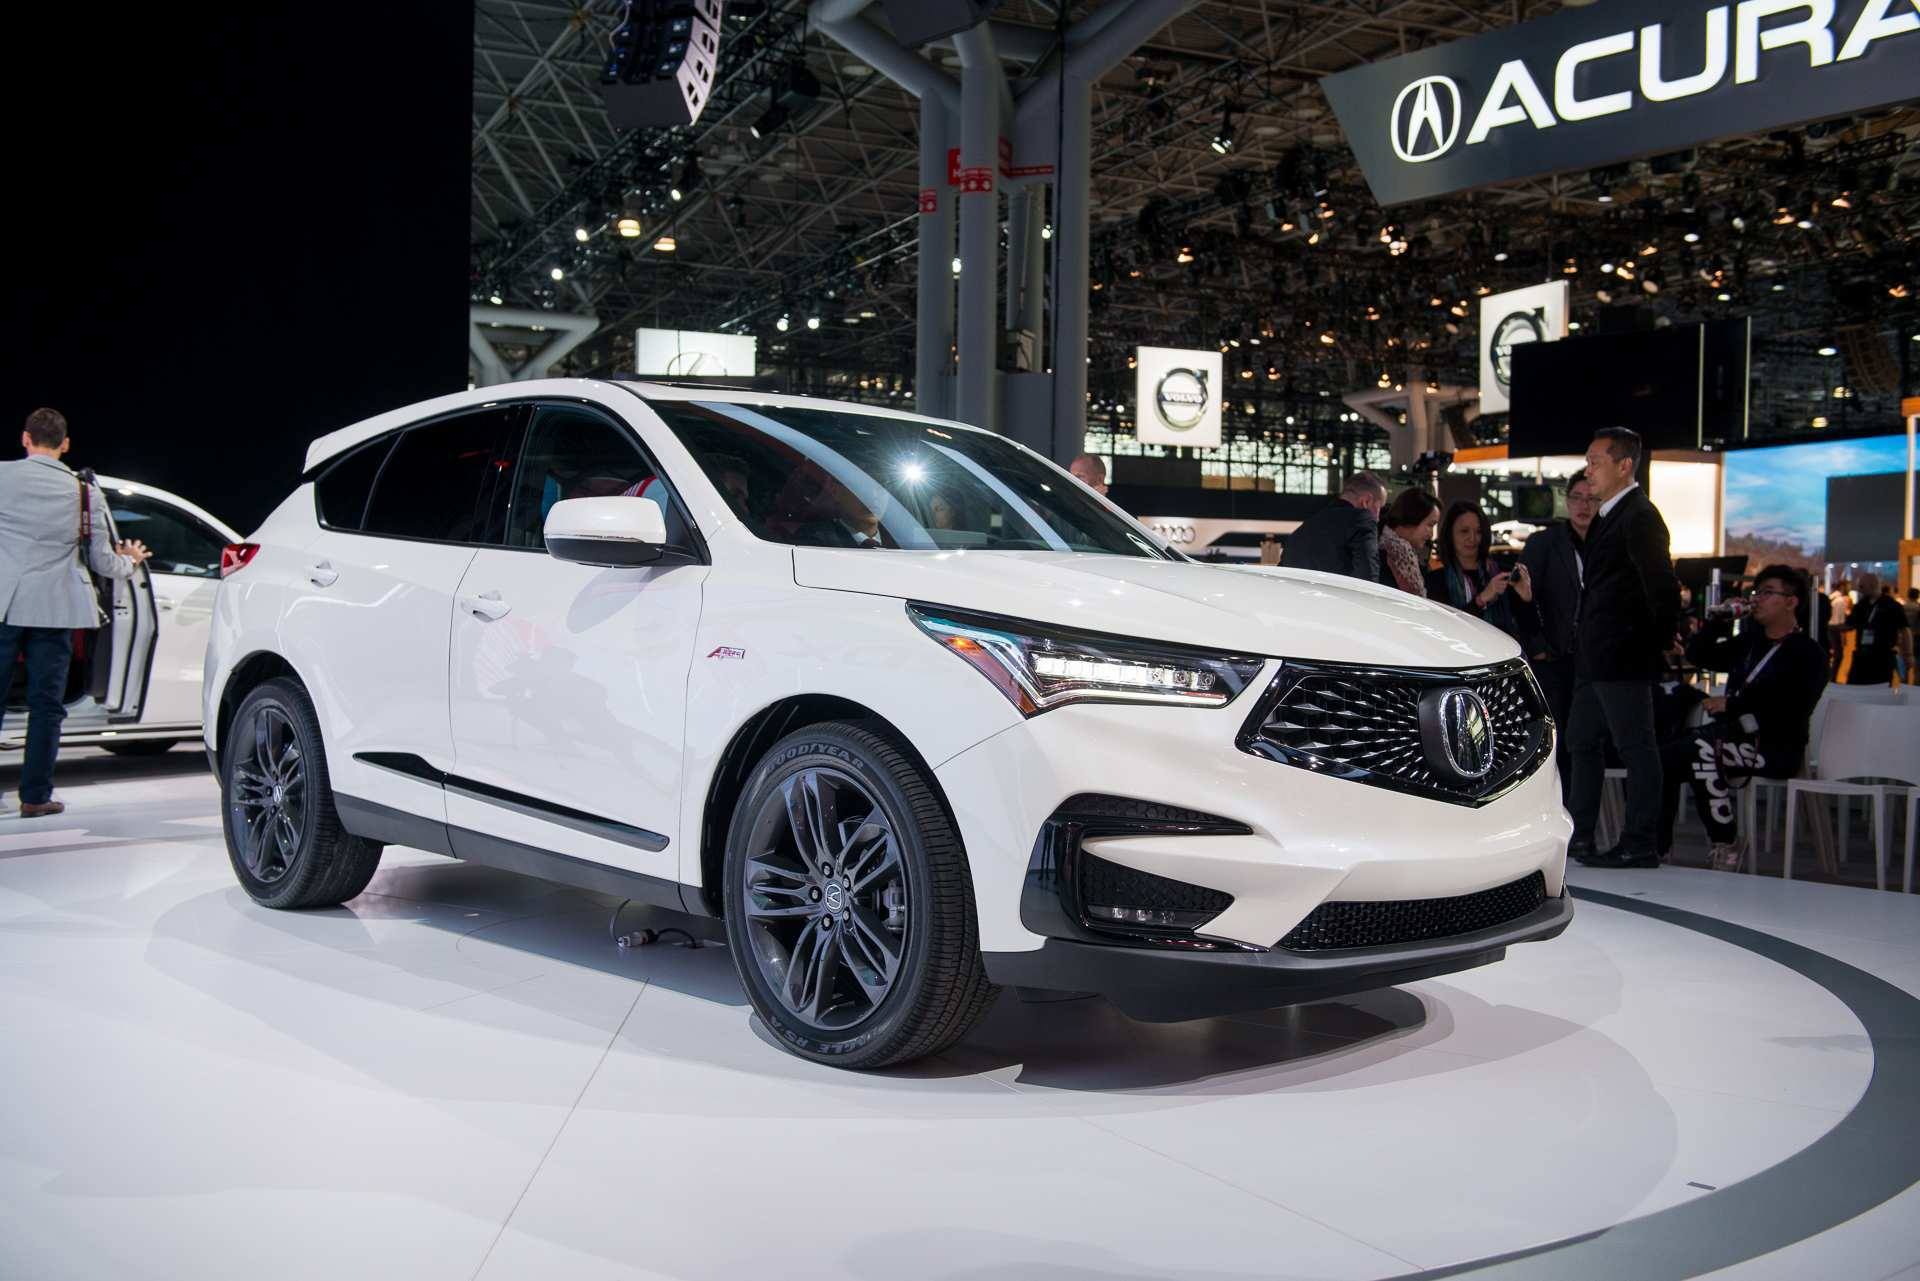 95 Concept of 2019 Acura Cars Reviews for 2019 Acura Cars